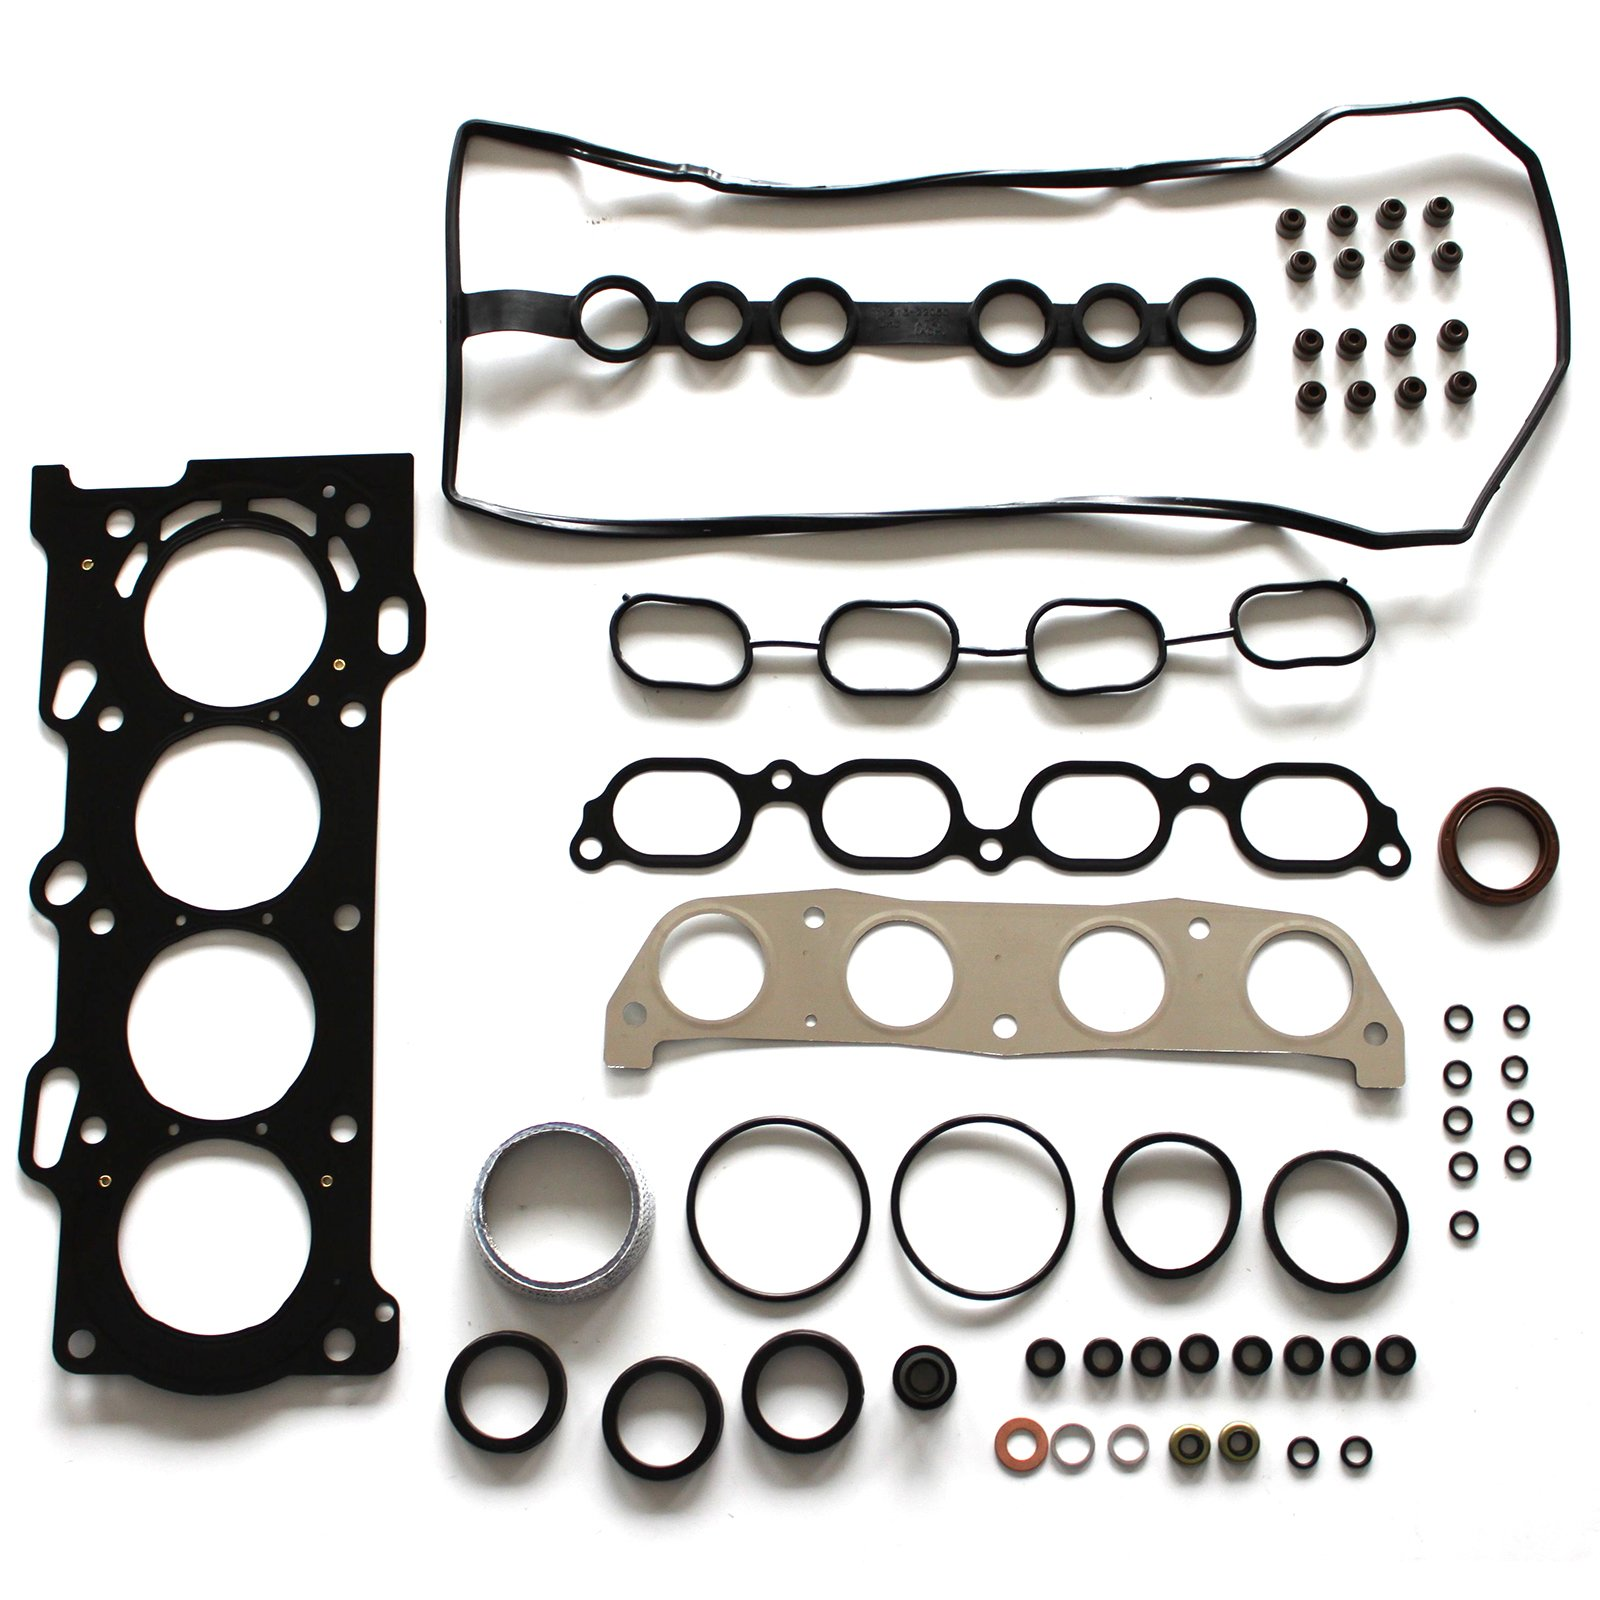 SCITOO MLS Cylinder Head Gasket Set Fit 1998-2008 Toyota Corolla Celica GT Chevrolet Pontiac Vibe 1.8L